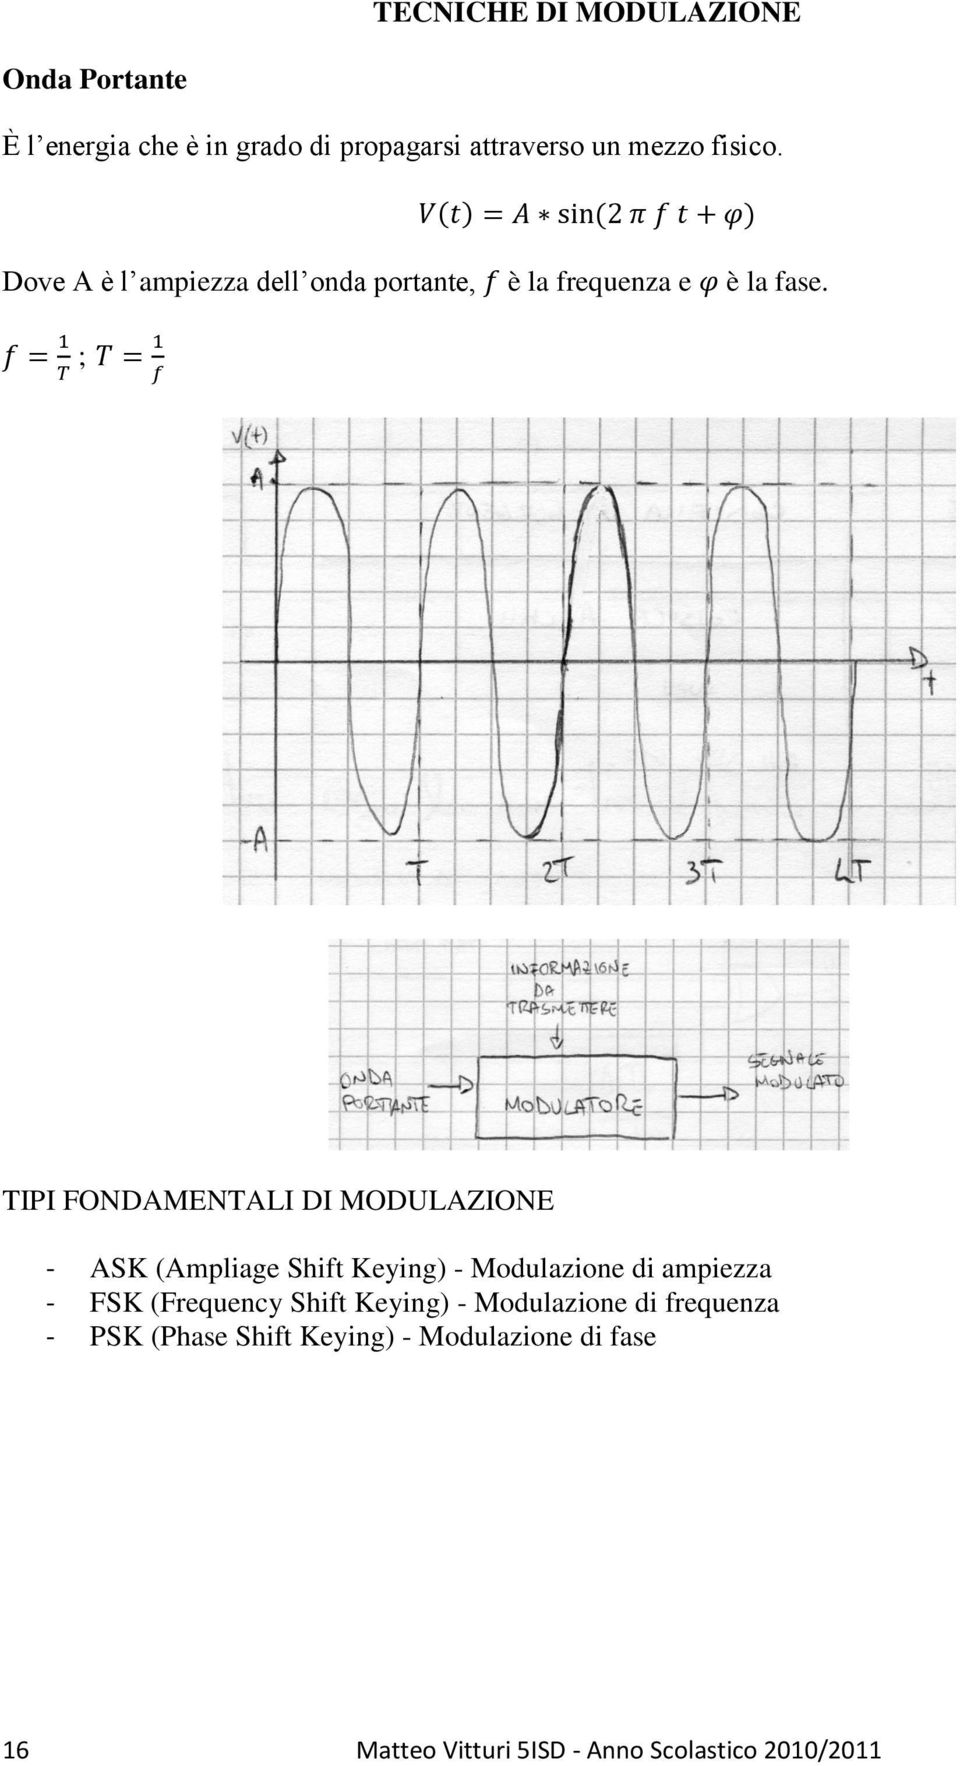 ; TIPI FONDAMENTALI DI MODULAZIONE - ASK (Ampliage Shift Keying) - Modulazione di ampiezza - FSK